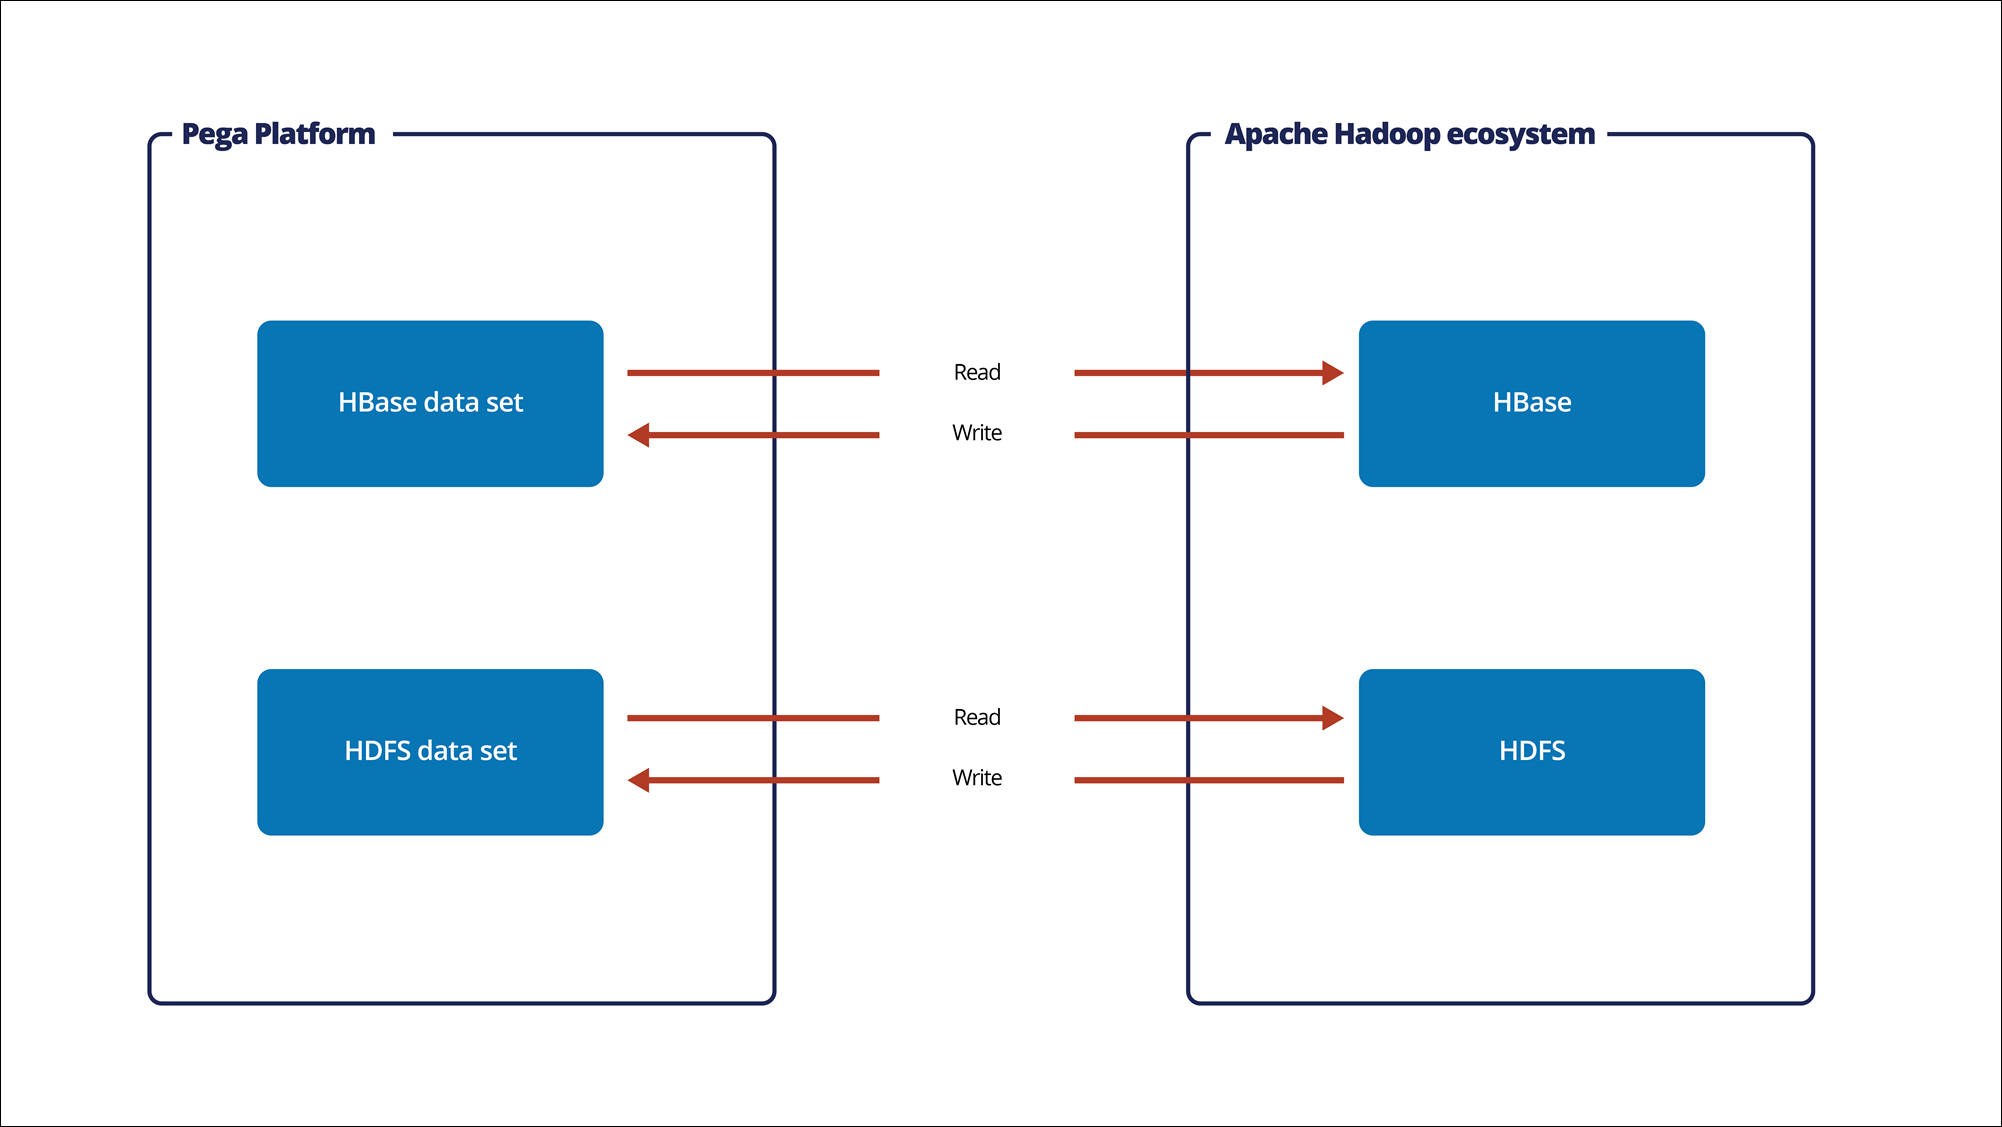 """HBase and HDFS data sets connections to an Apache Hadoop ecosystem"""